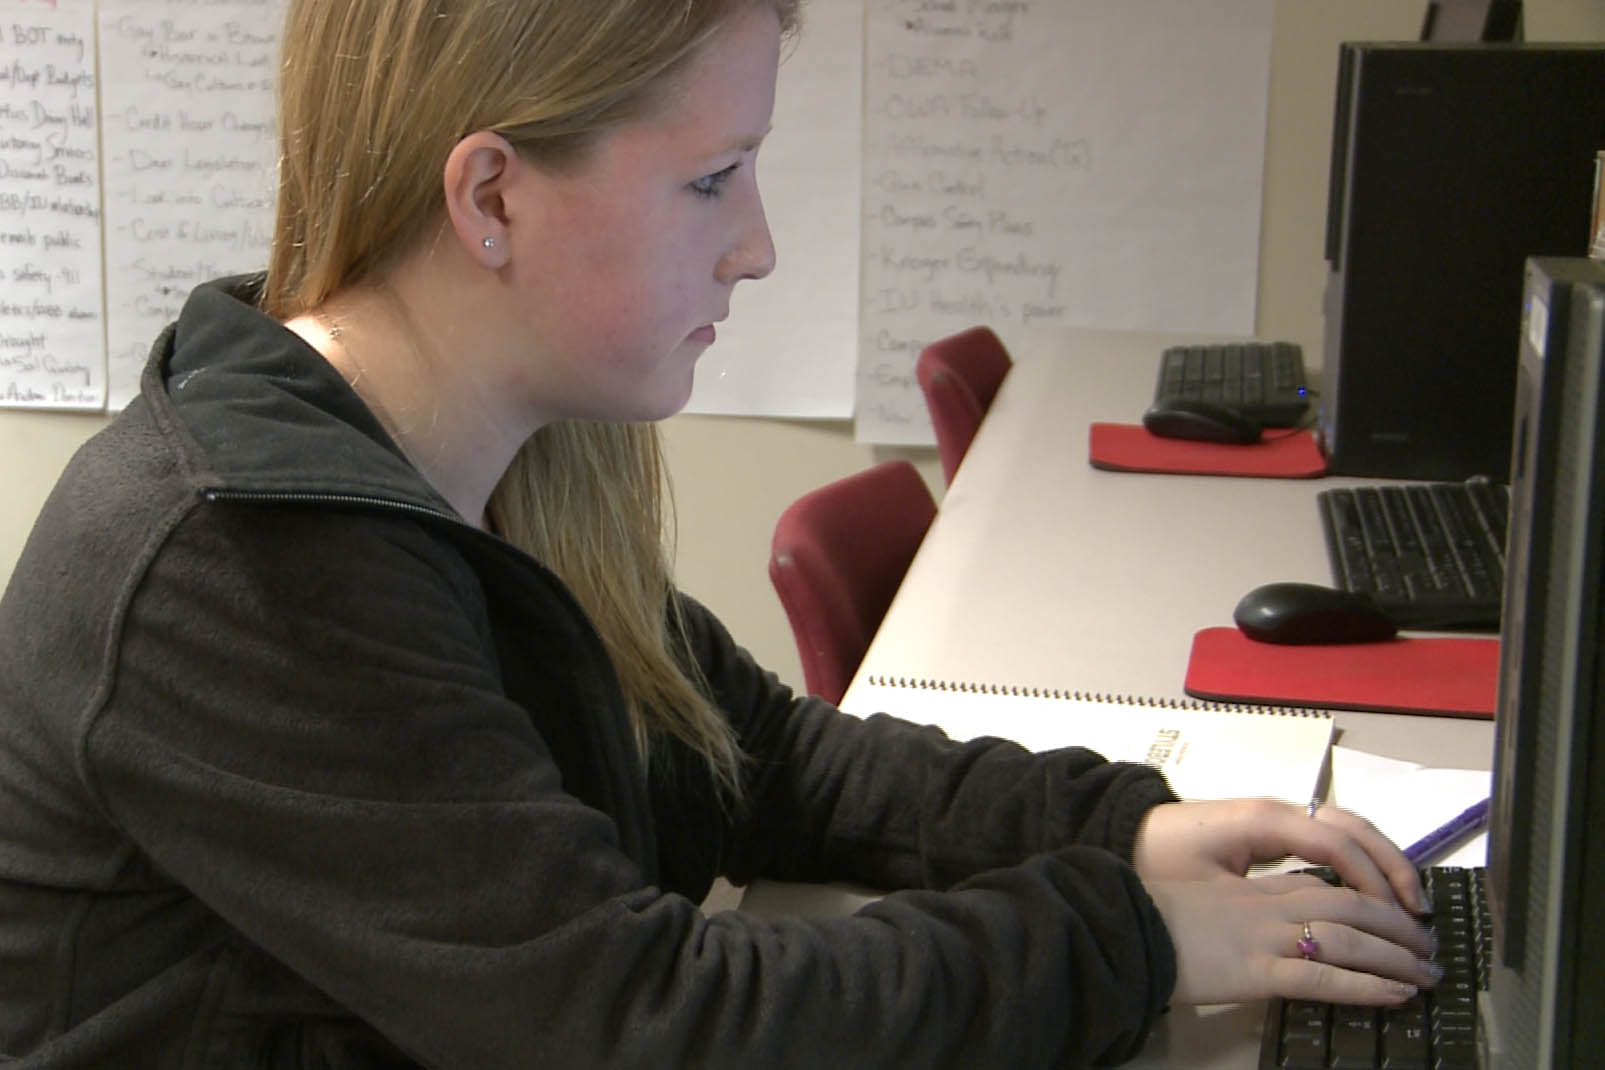 A student journalist works on a story for a college paper.